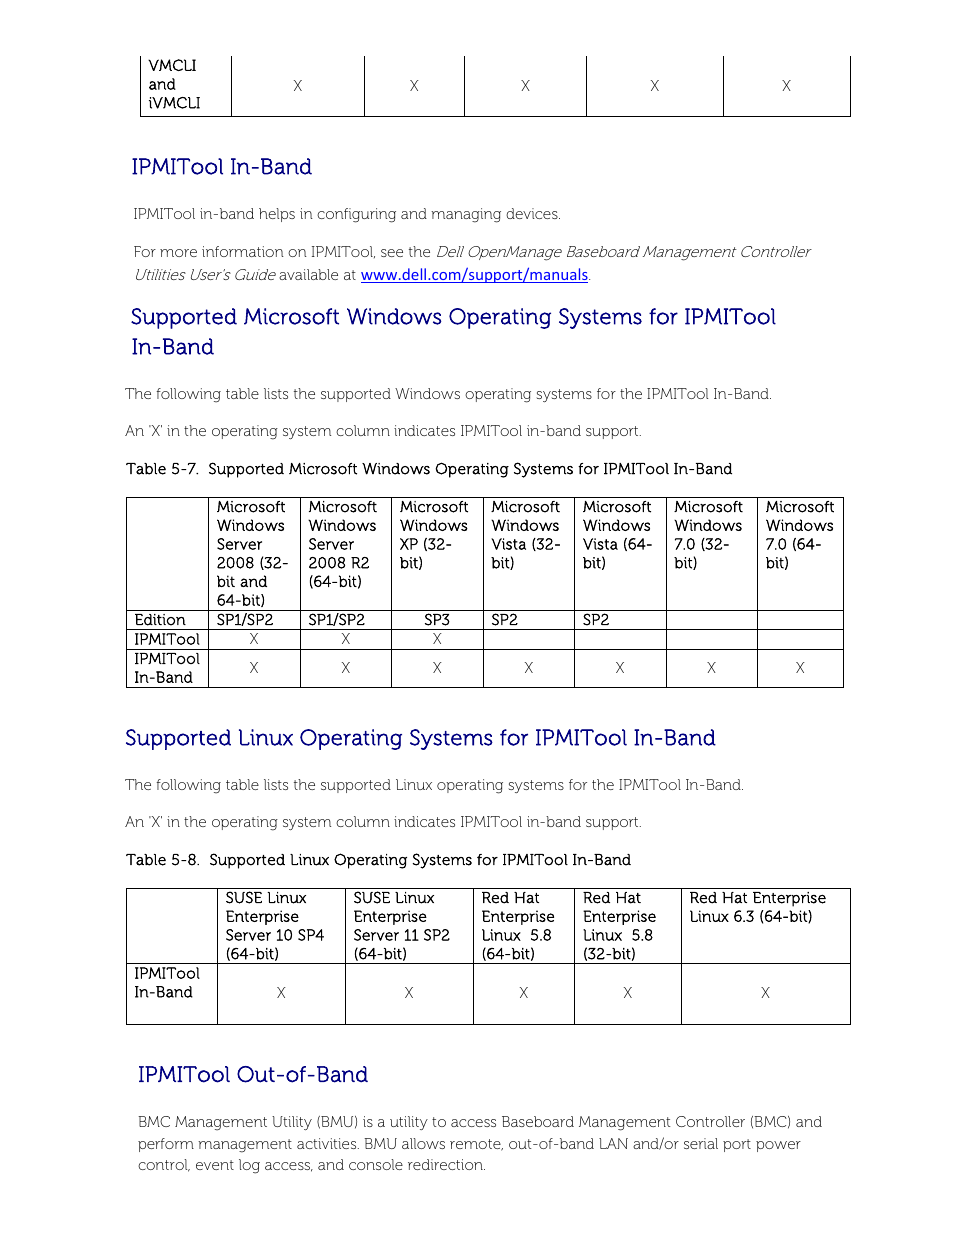 Ipmitool in-band, Ipmitool out-of-band, Bmc management